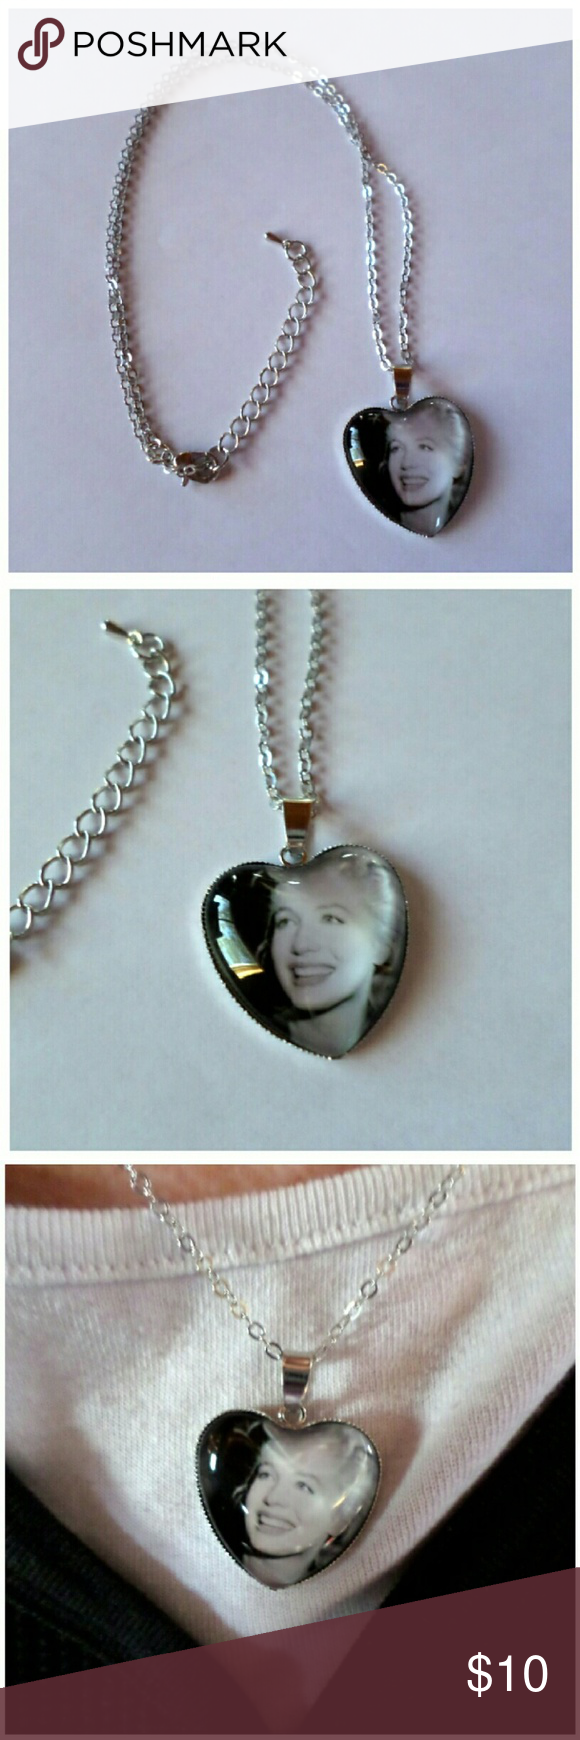 """Marilyn Monroe Silver Necklace Pendant measures 1.5 x 1""""  Chain measures 17 - 19""""   Color: Silver  Material: Alloy, Glass, Photo  New without tags.  Price is firm unless bundled boutique  Jewelry Necklaces"""